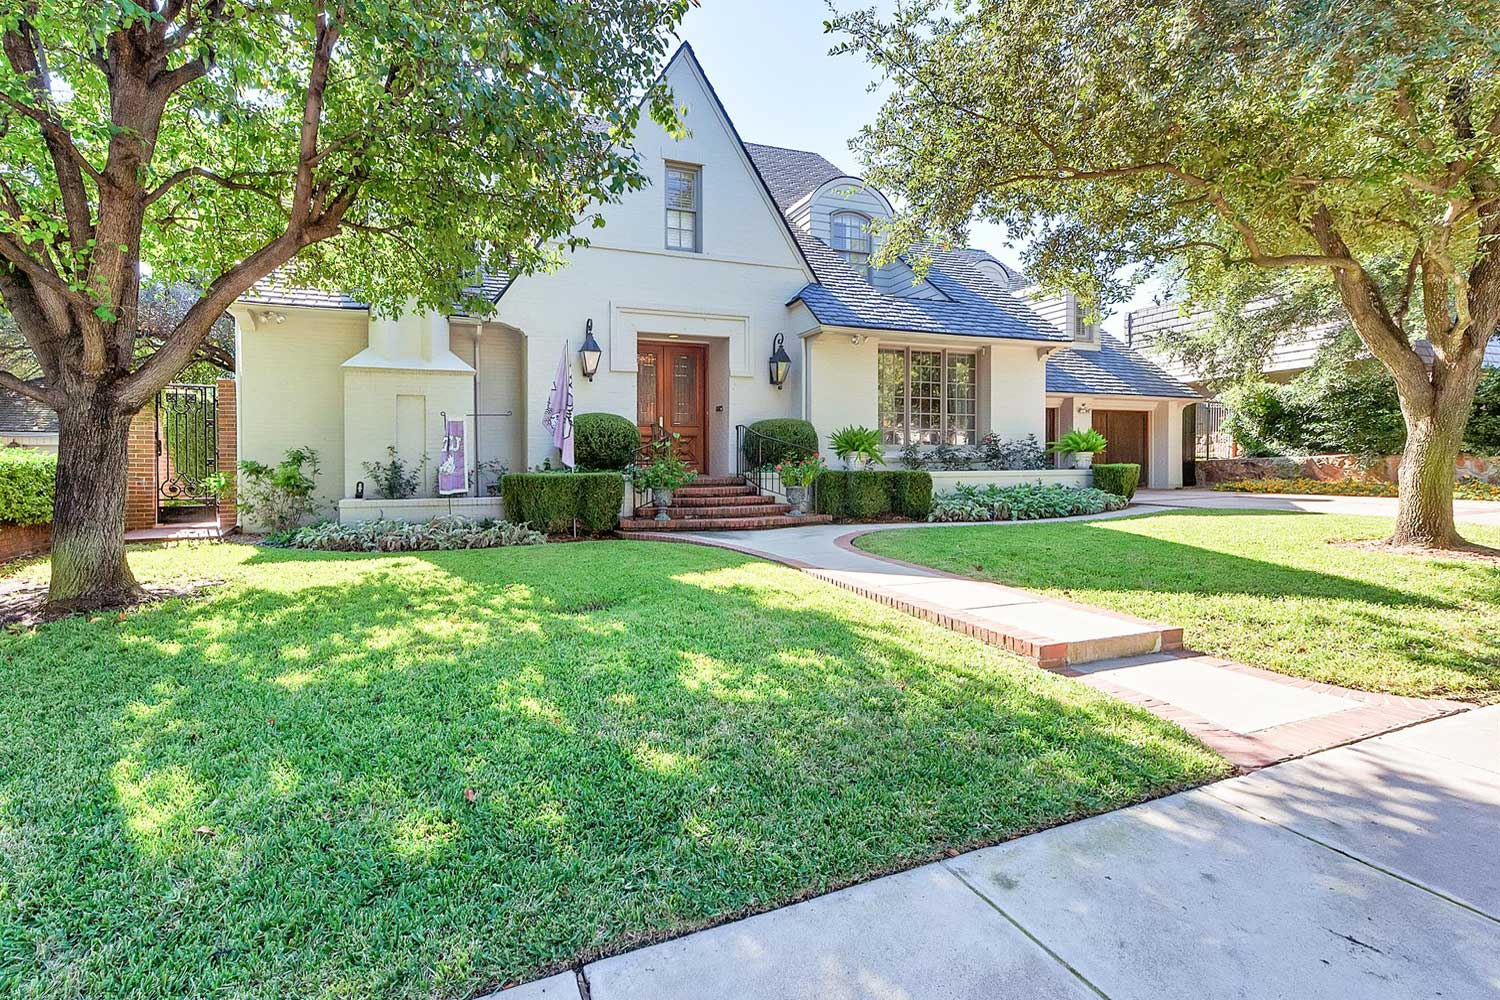 <b>Fort Worth, Texas</b><br/><i>5 Bedrooms, 4,909 sq. ft.</i><br/>Monticello manse with pool